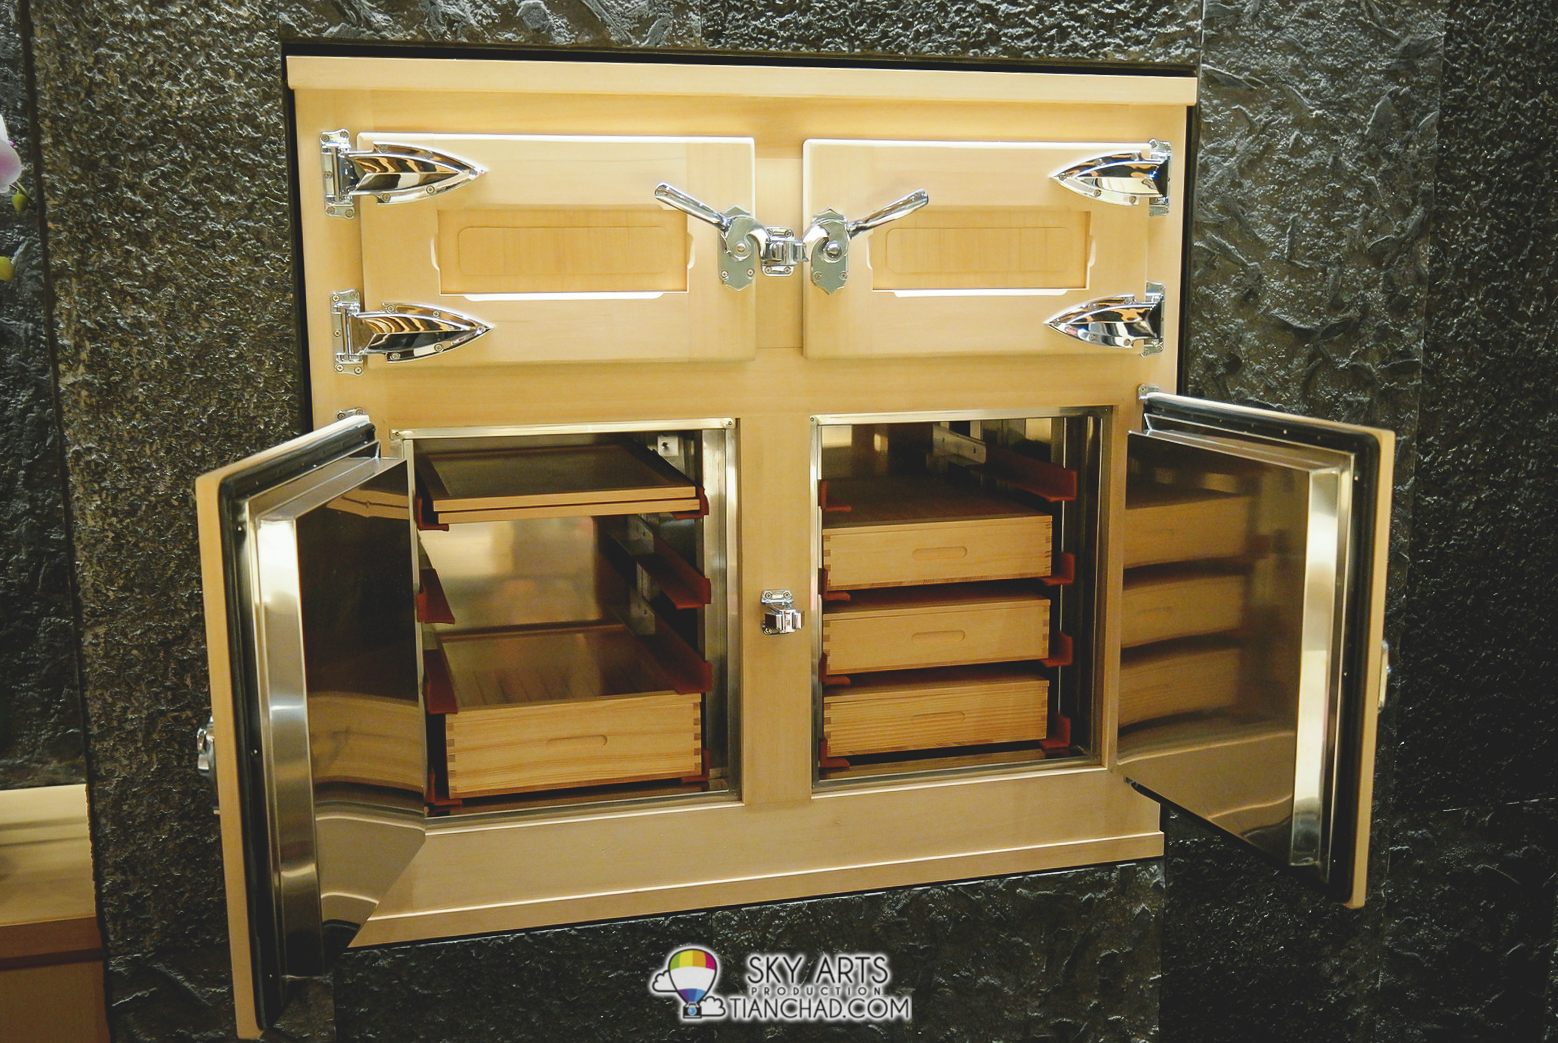 Traditional Wooden Ice Refrigerator to keep your sushi fresh